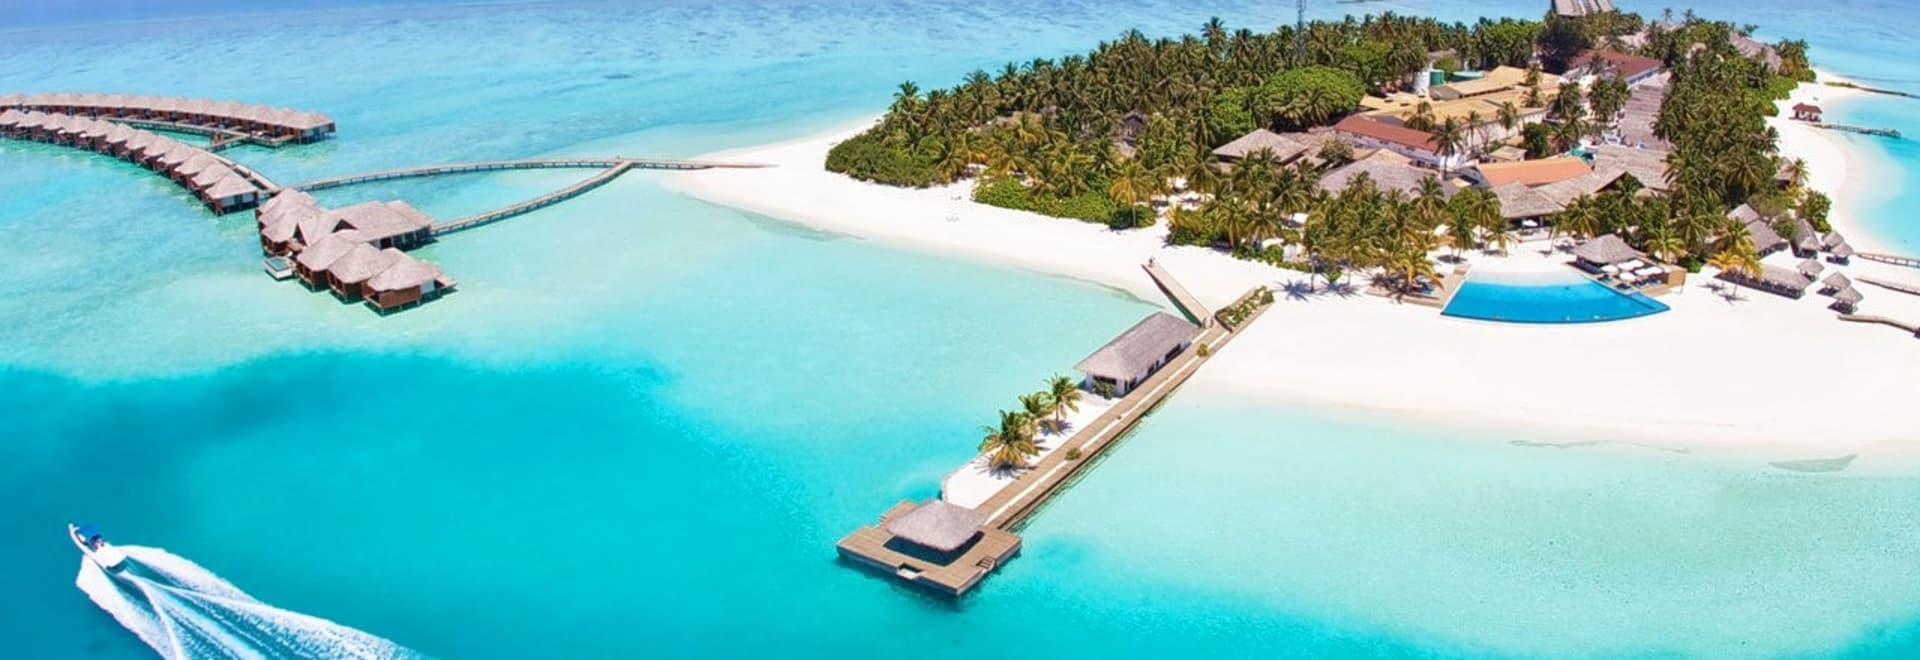 how to get to maldives from singapore